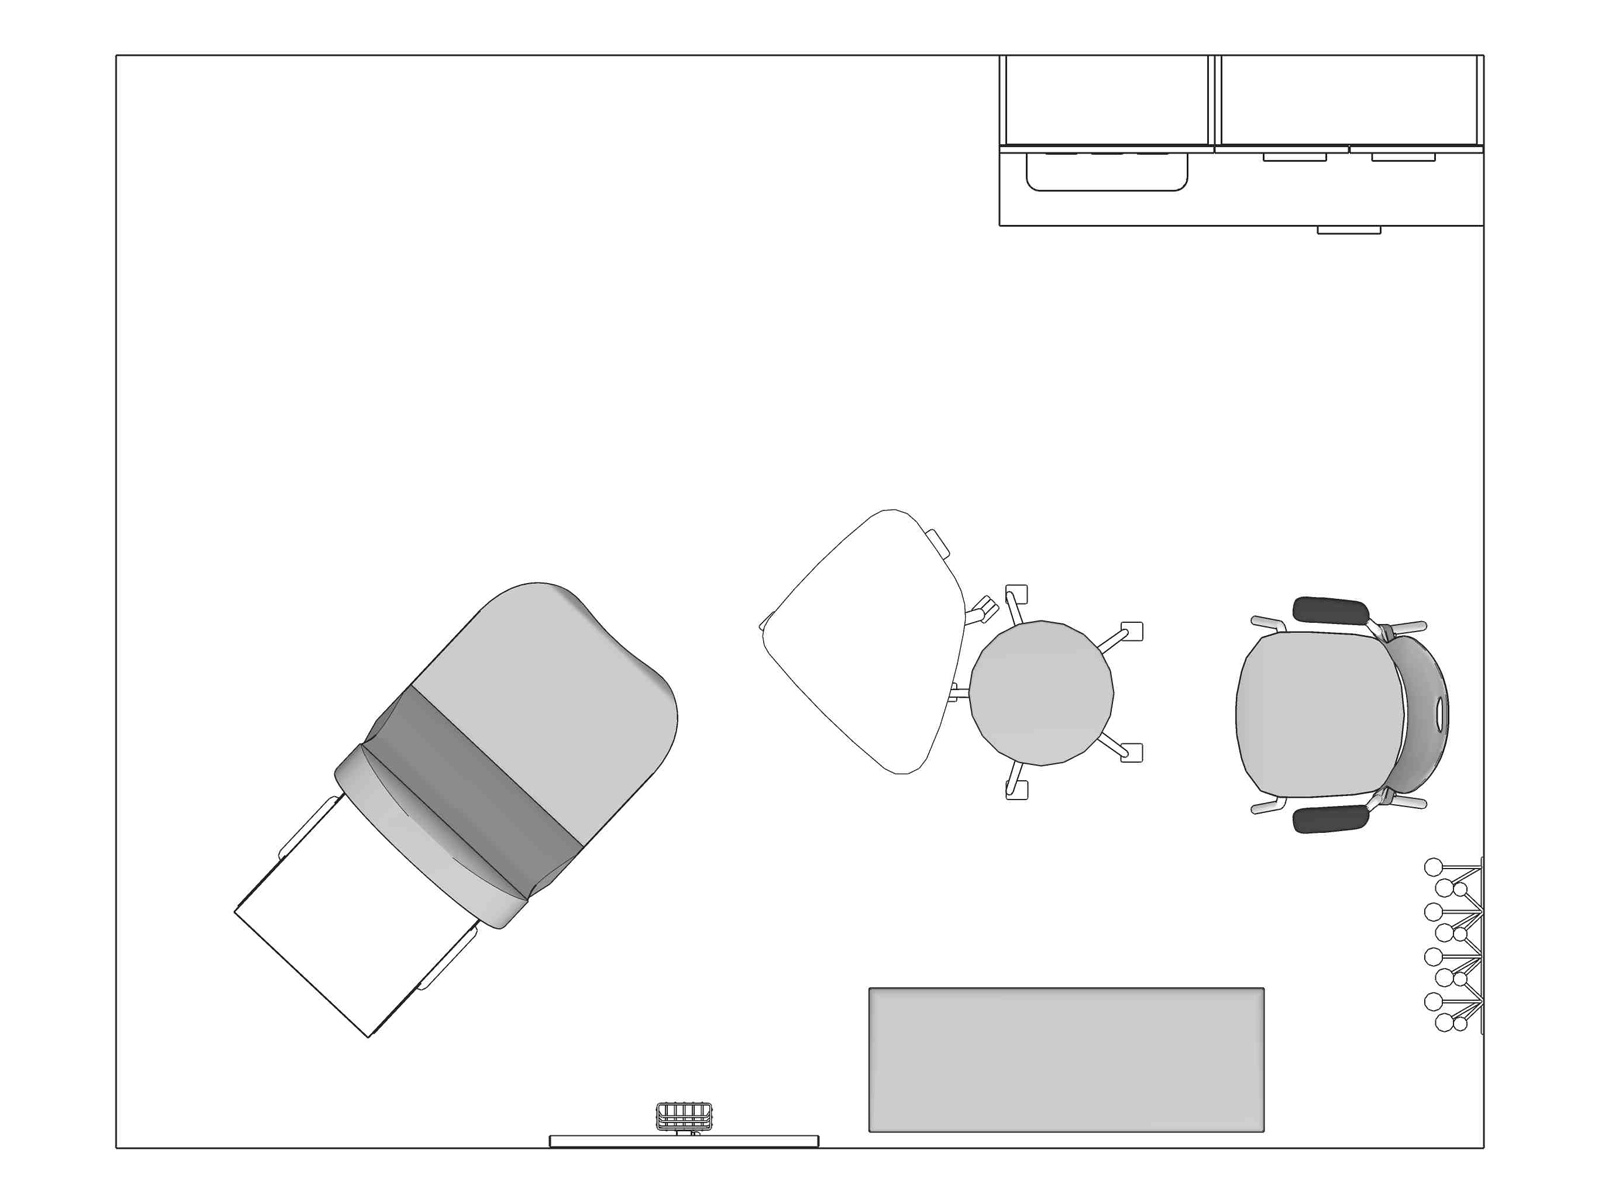 A line drawing viewed from above - Exam Room 009